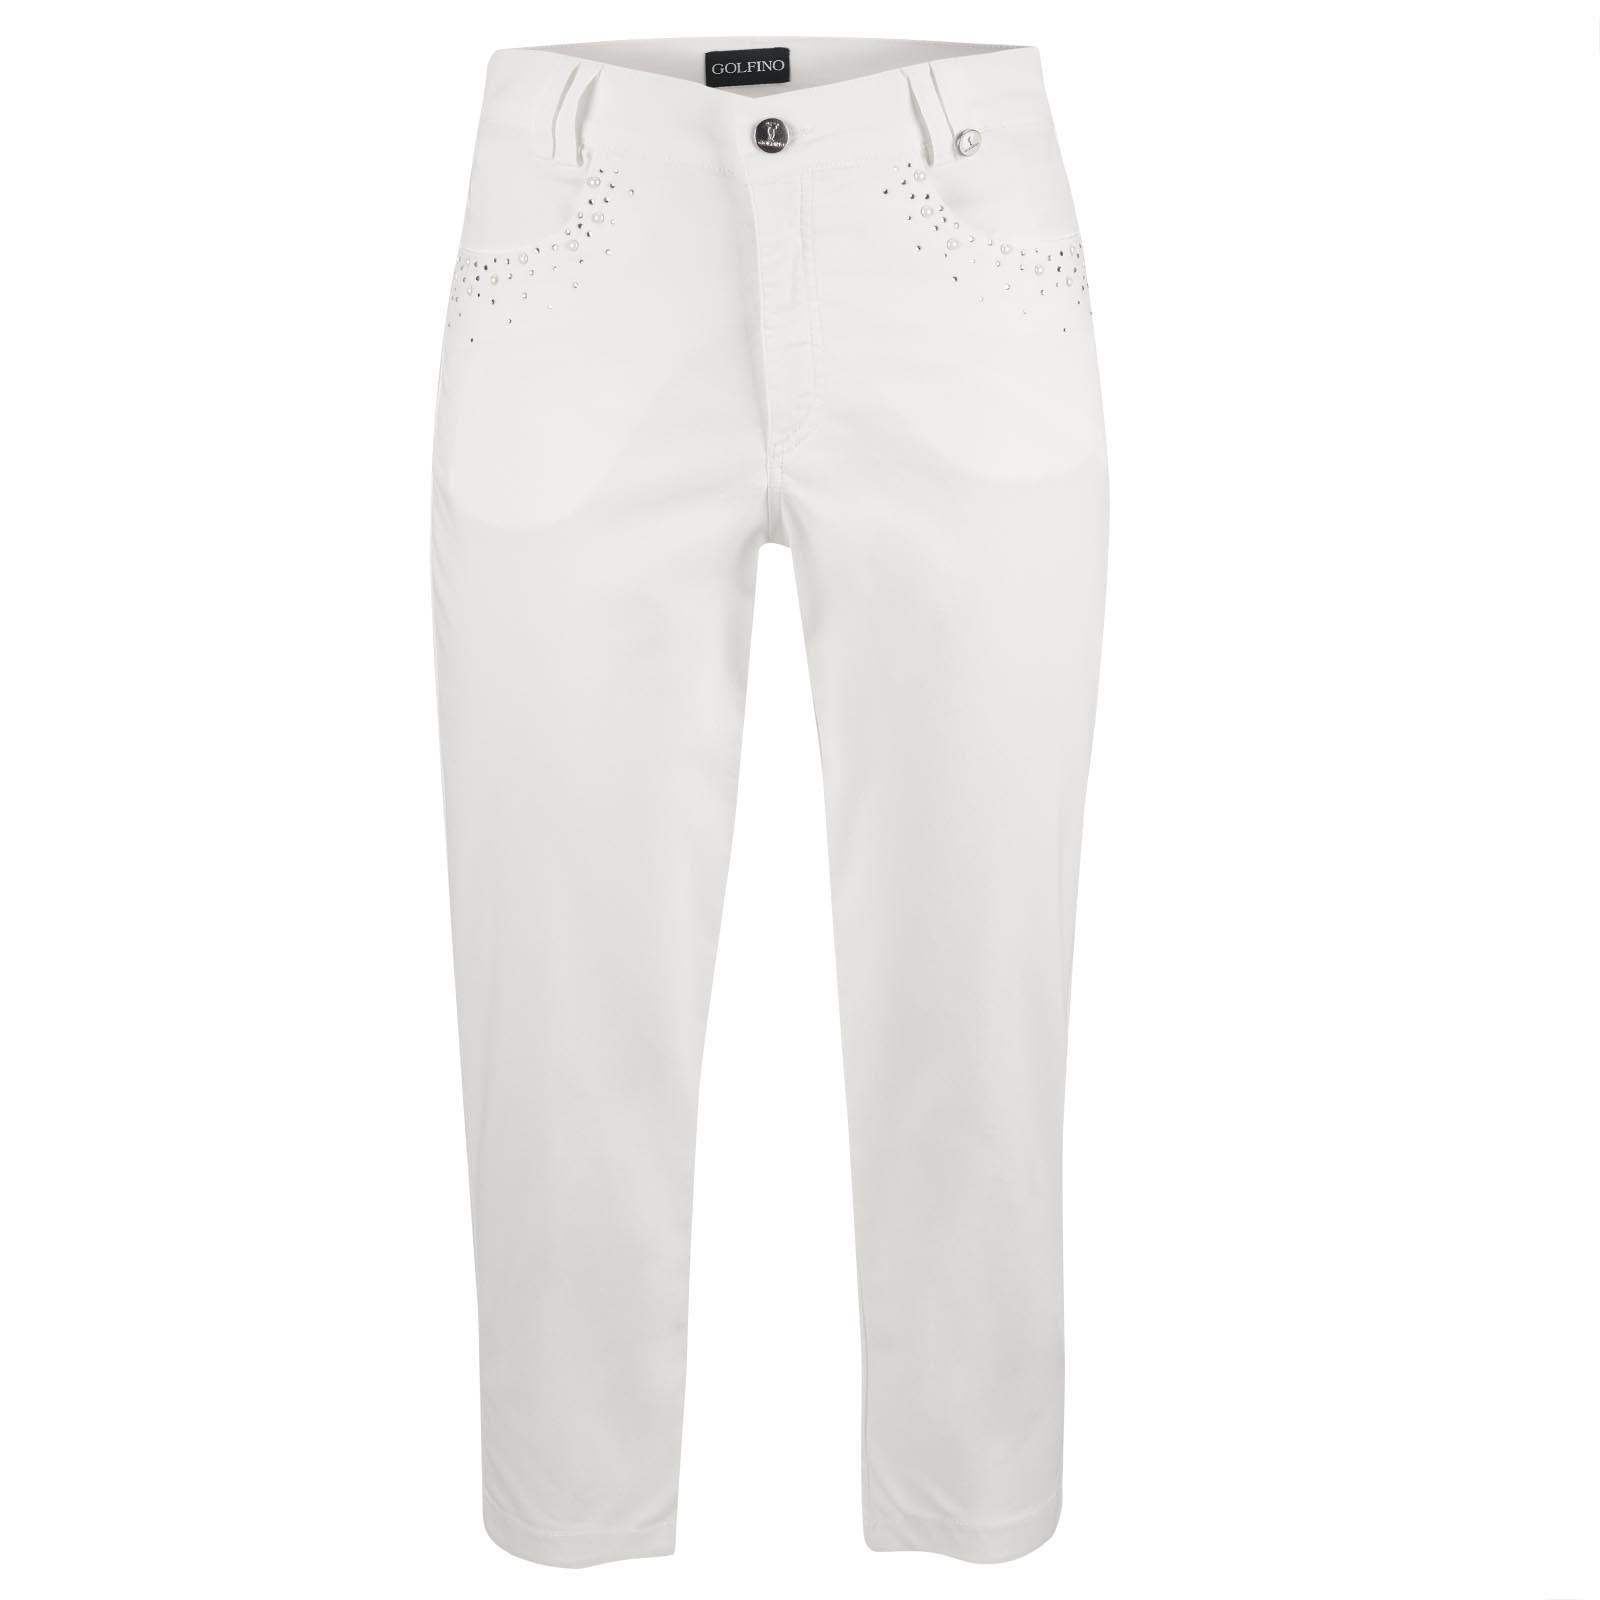 Ladies' golf capri trousers with beads embellishment from exclusive cotton mix